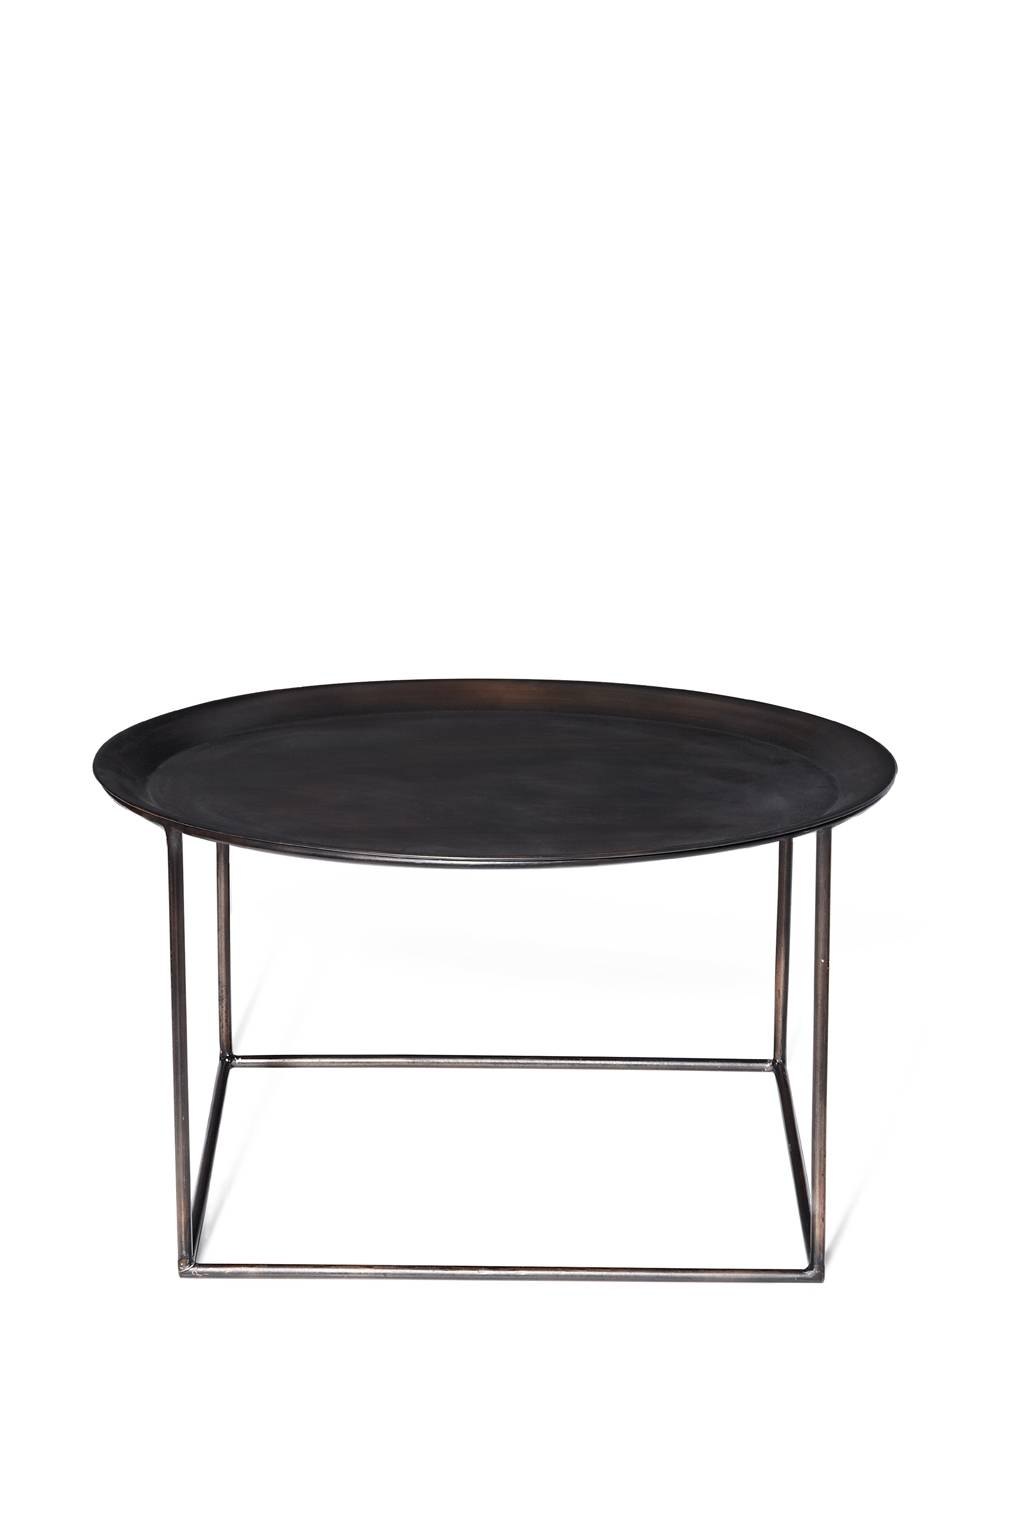 Round Metal Tray Coffee Table | Coffee Tables Decoration intended for Round Coffee Table Trays (Image 23 of 30)